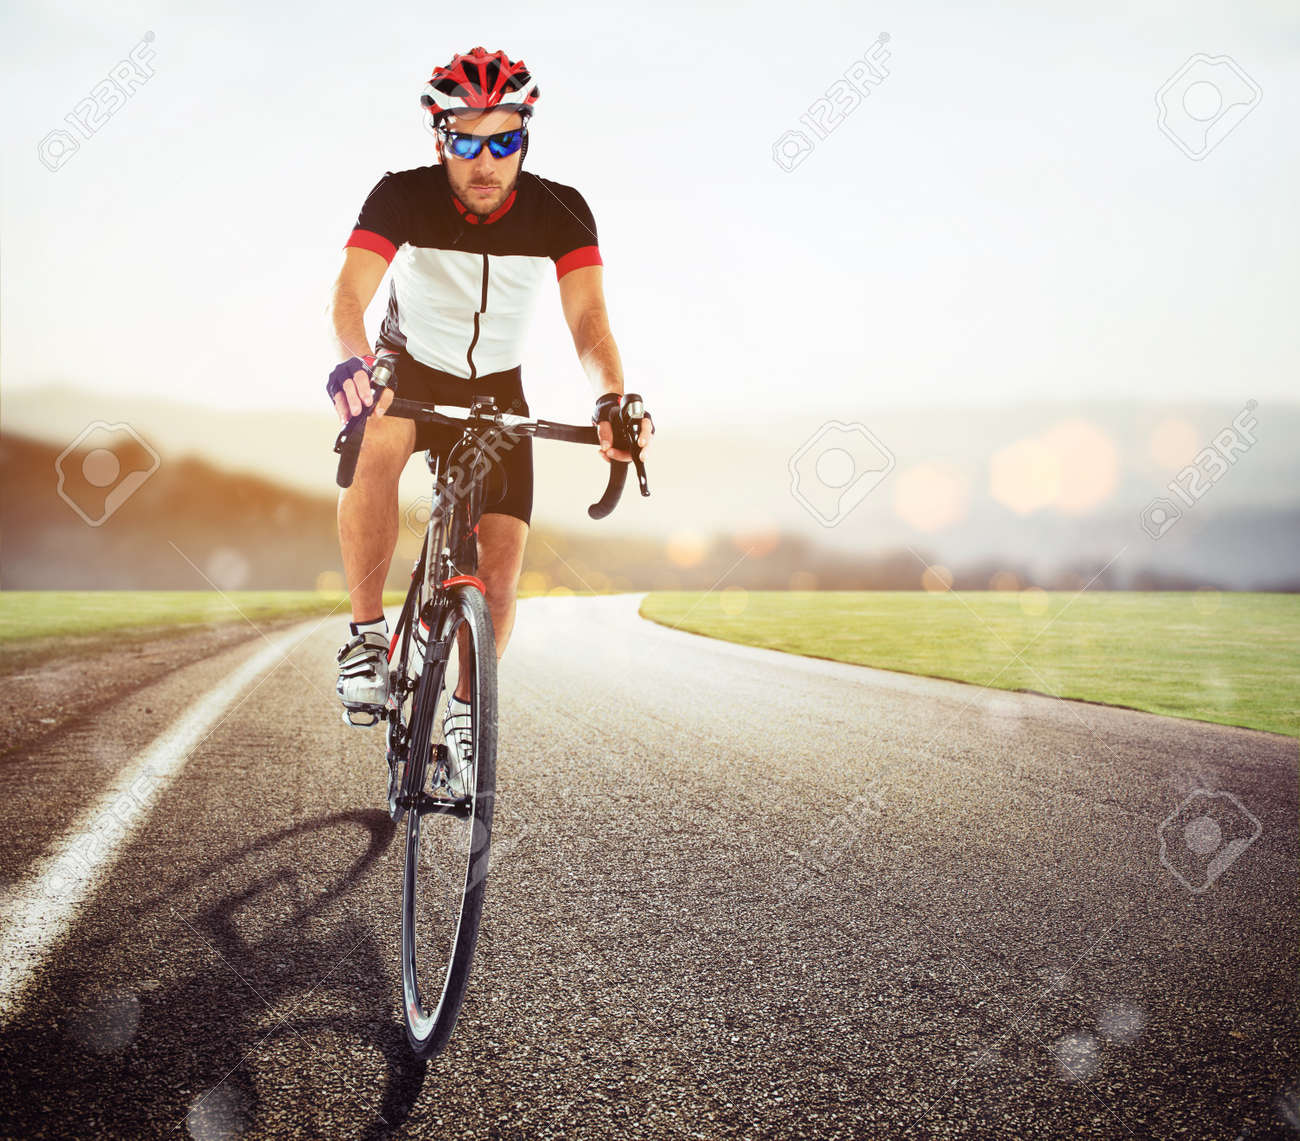 Front view of a road cyclist in uniform during a race at sunset - 82659592